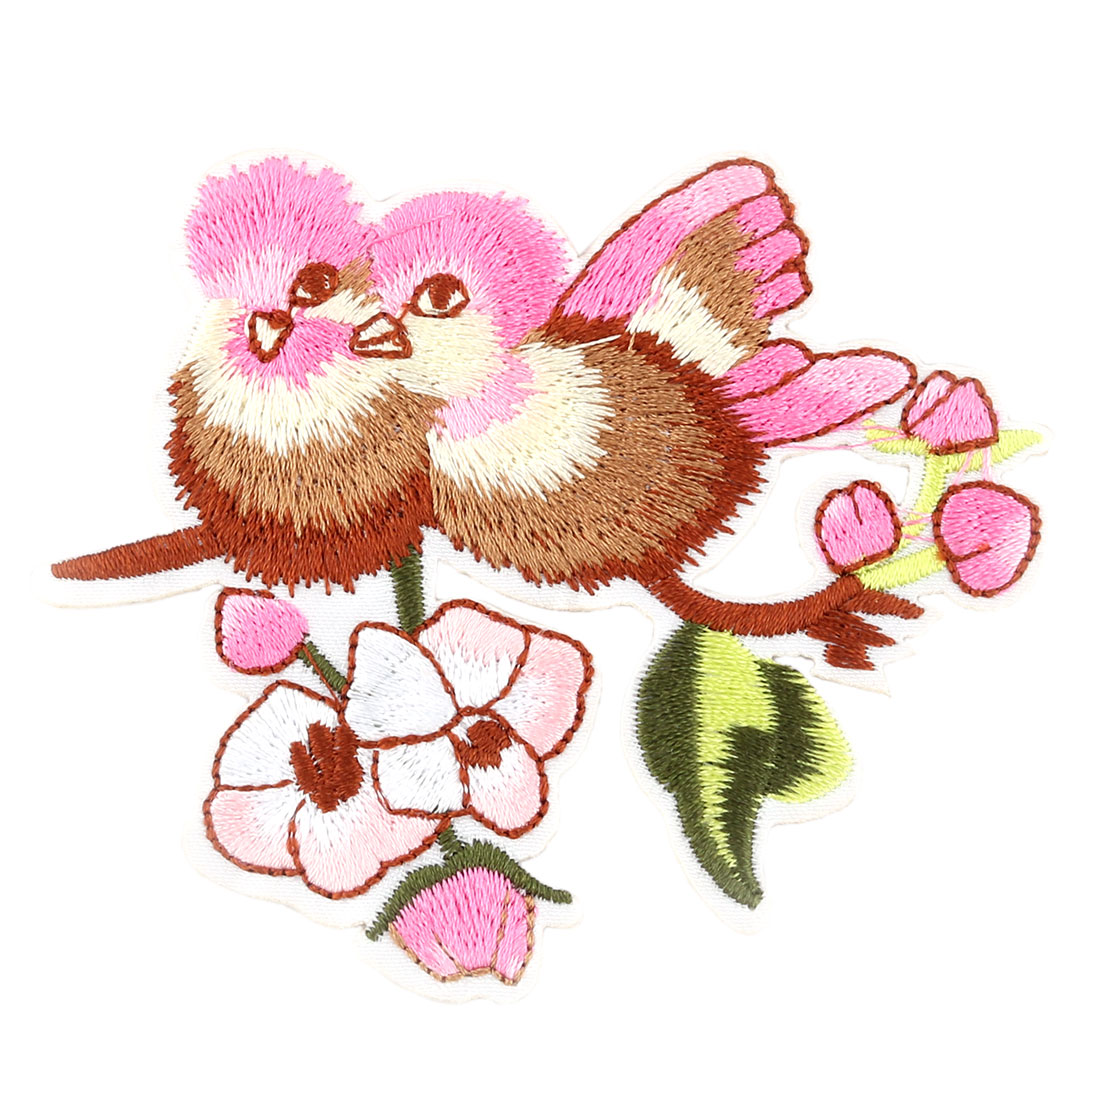 Unique Bargains Home Polyester Bird Pattern Embroidery Handicraft Clothes Trouser Lace Applique